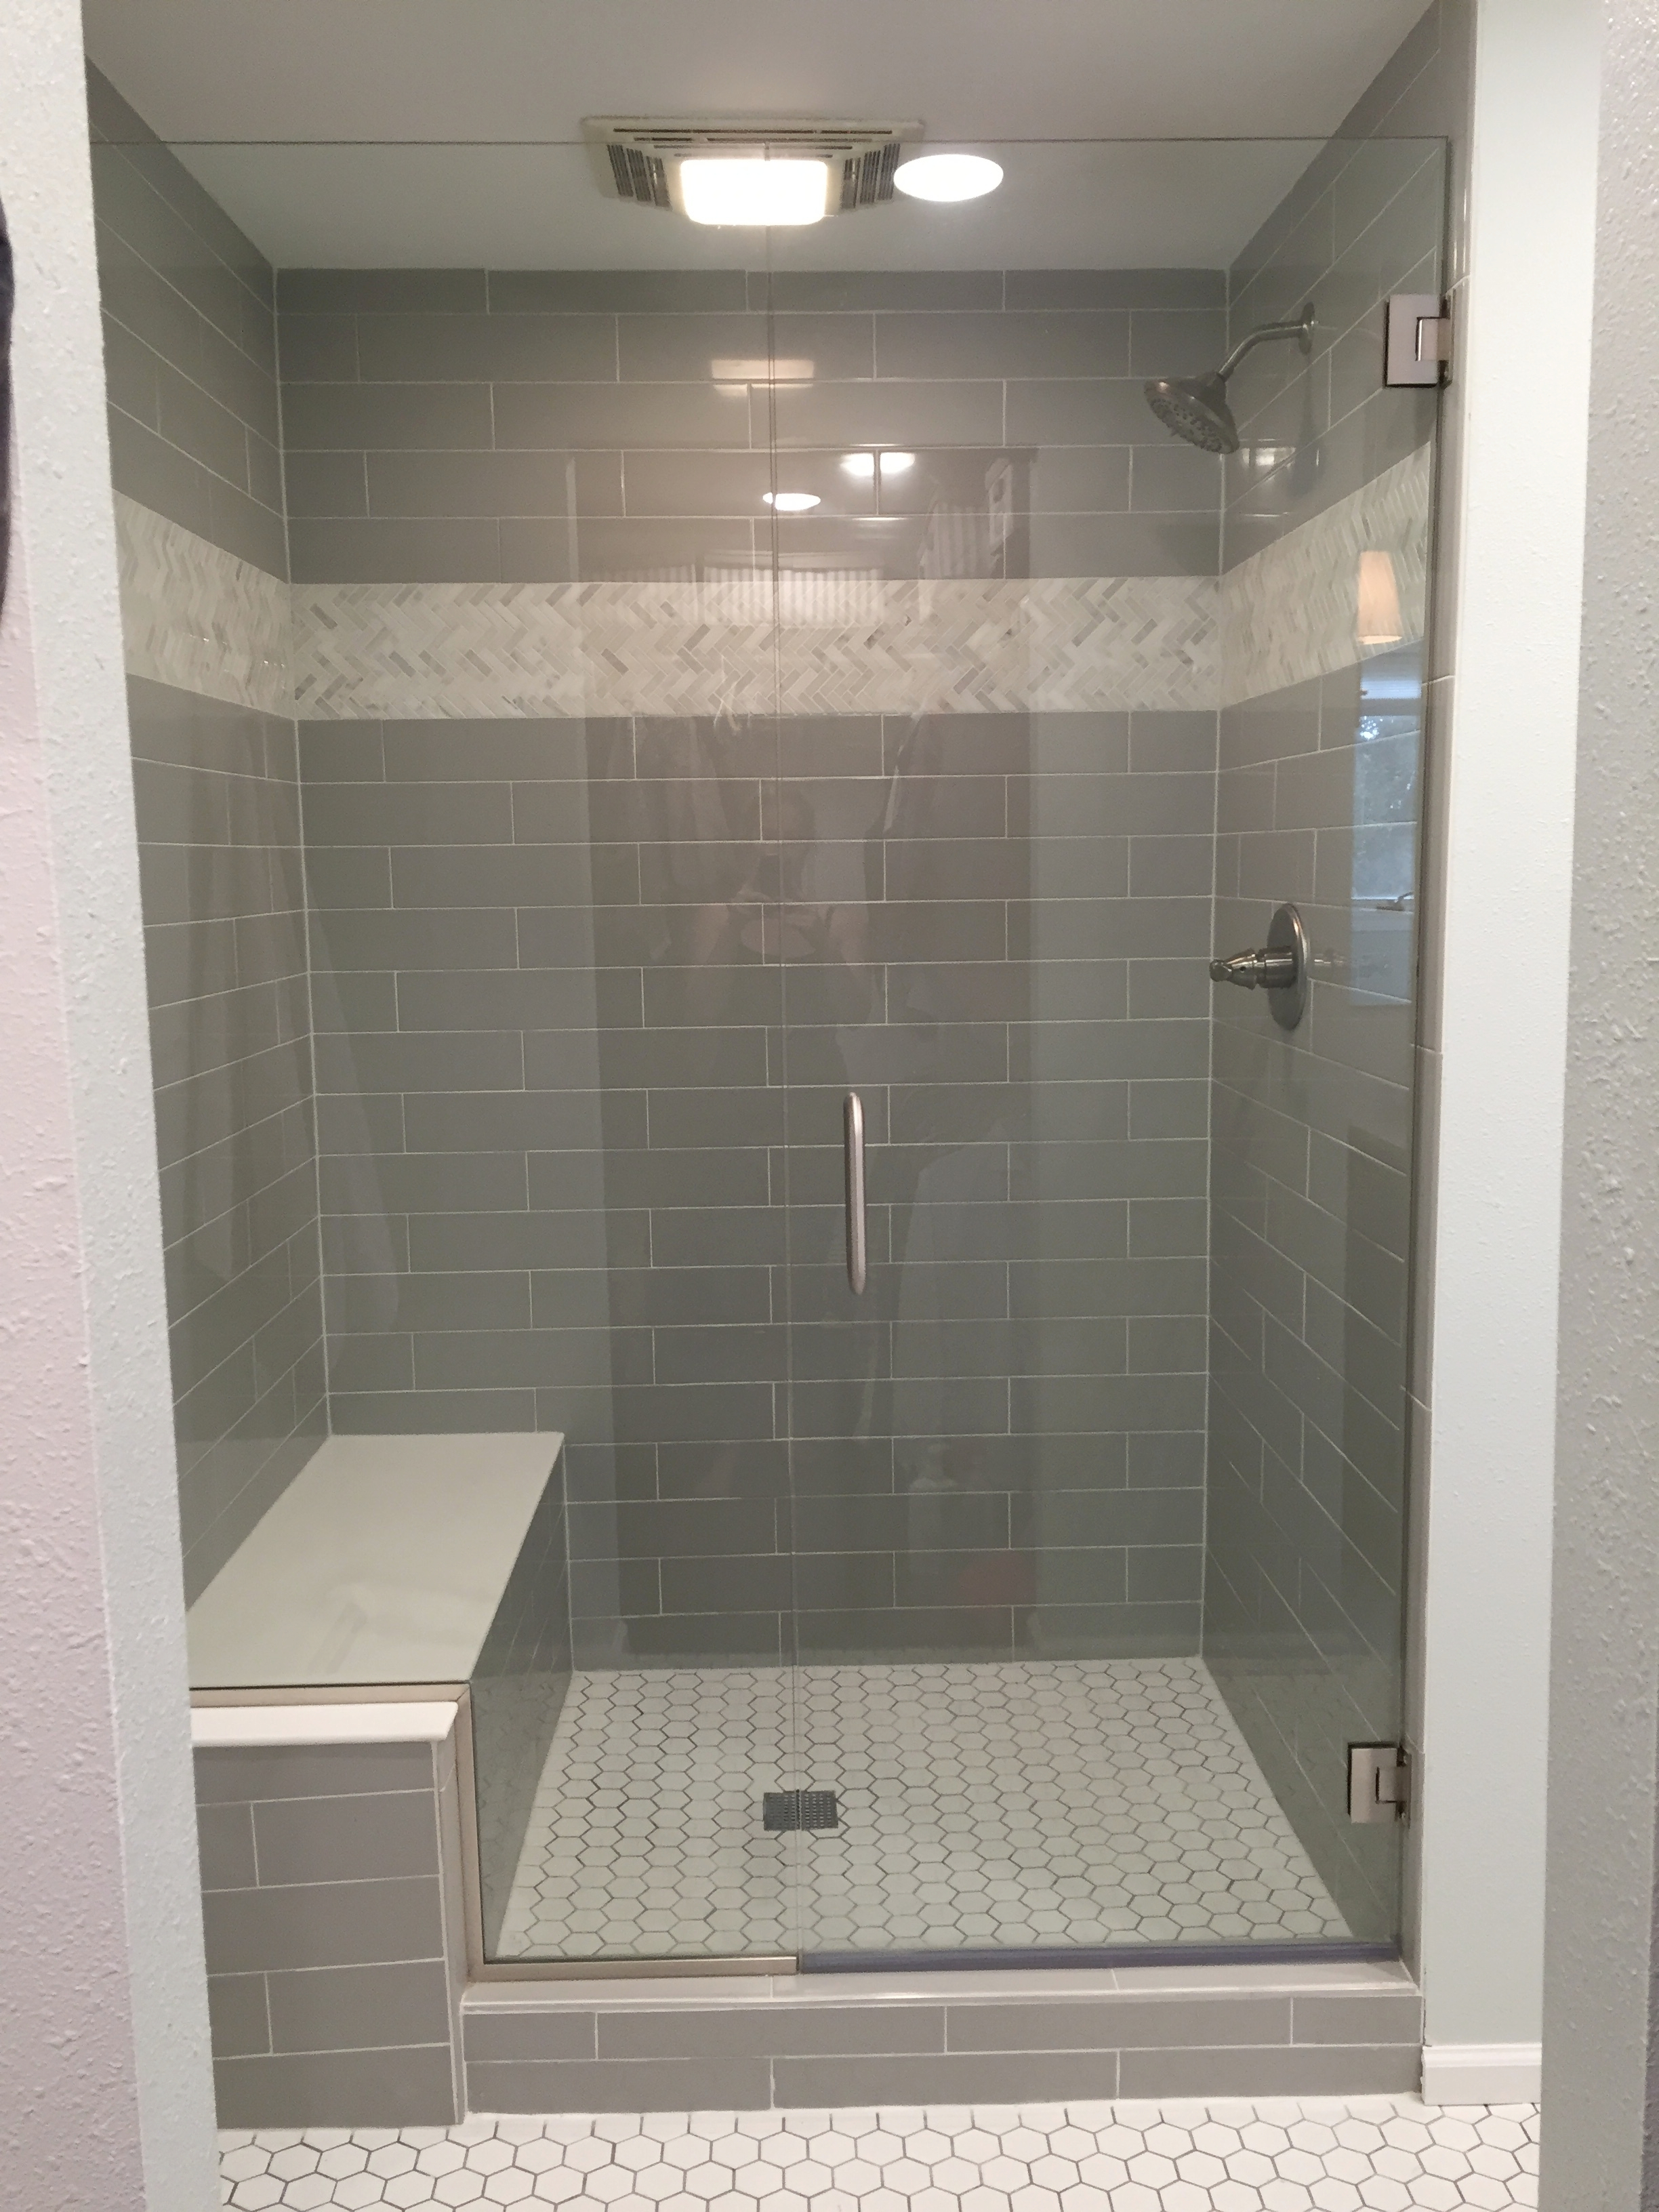 Shower tIles are from The Tile Shop and the glass door is from Home Depot.